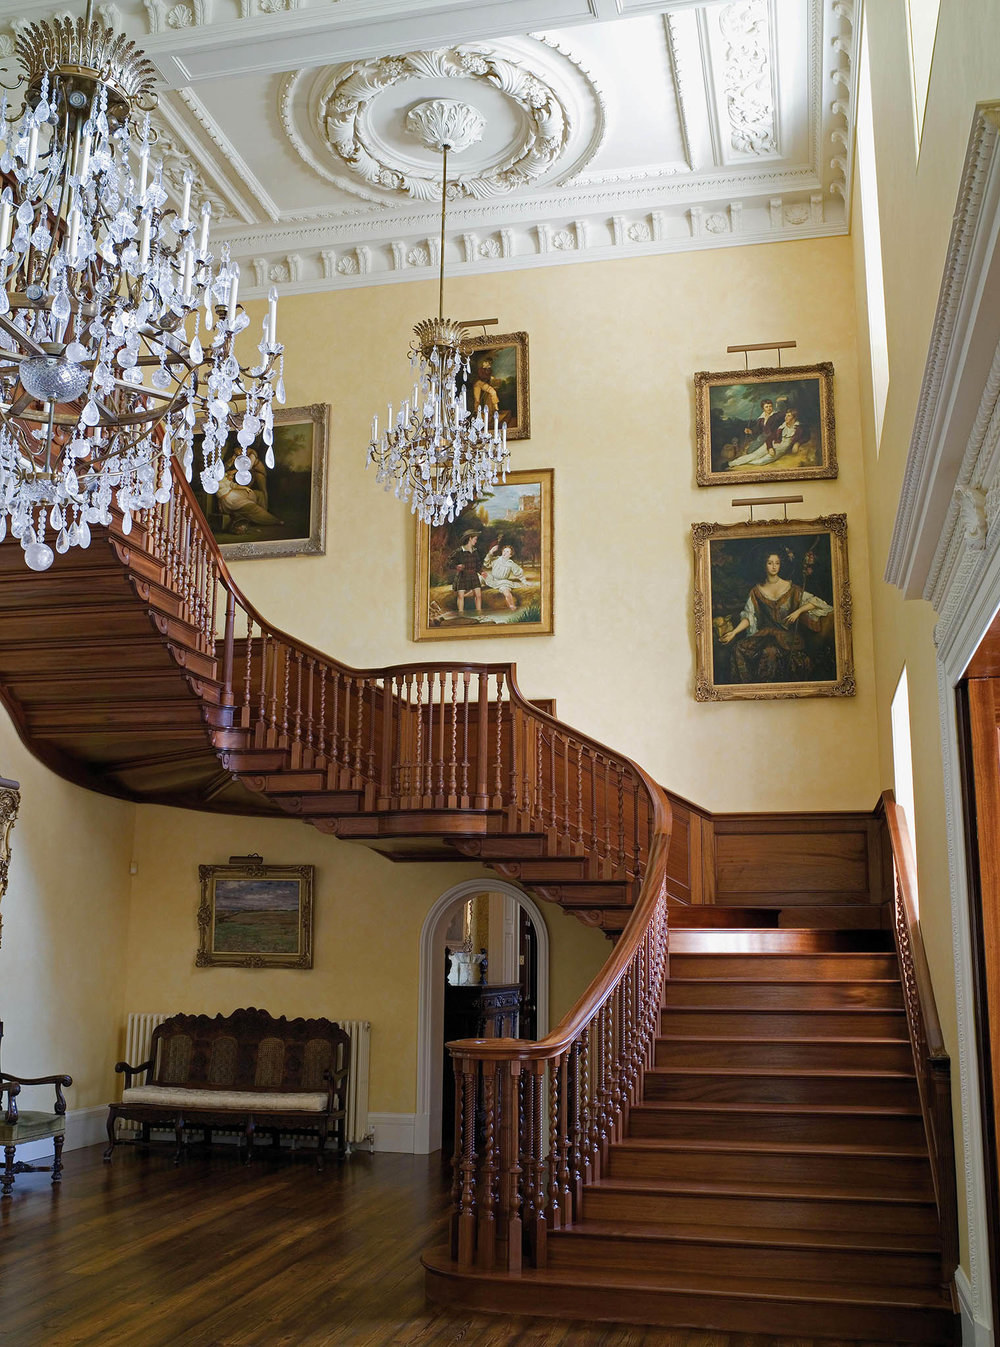 Ancestral portraits look out over the grand foyer's sweeping staircase. Photo courtesy of Spencer-Churchill Designs Ltd, T/A Woodstock Designs